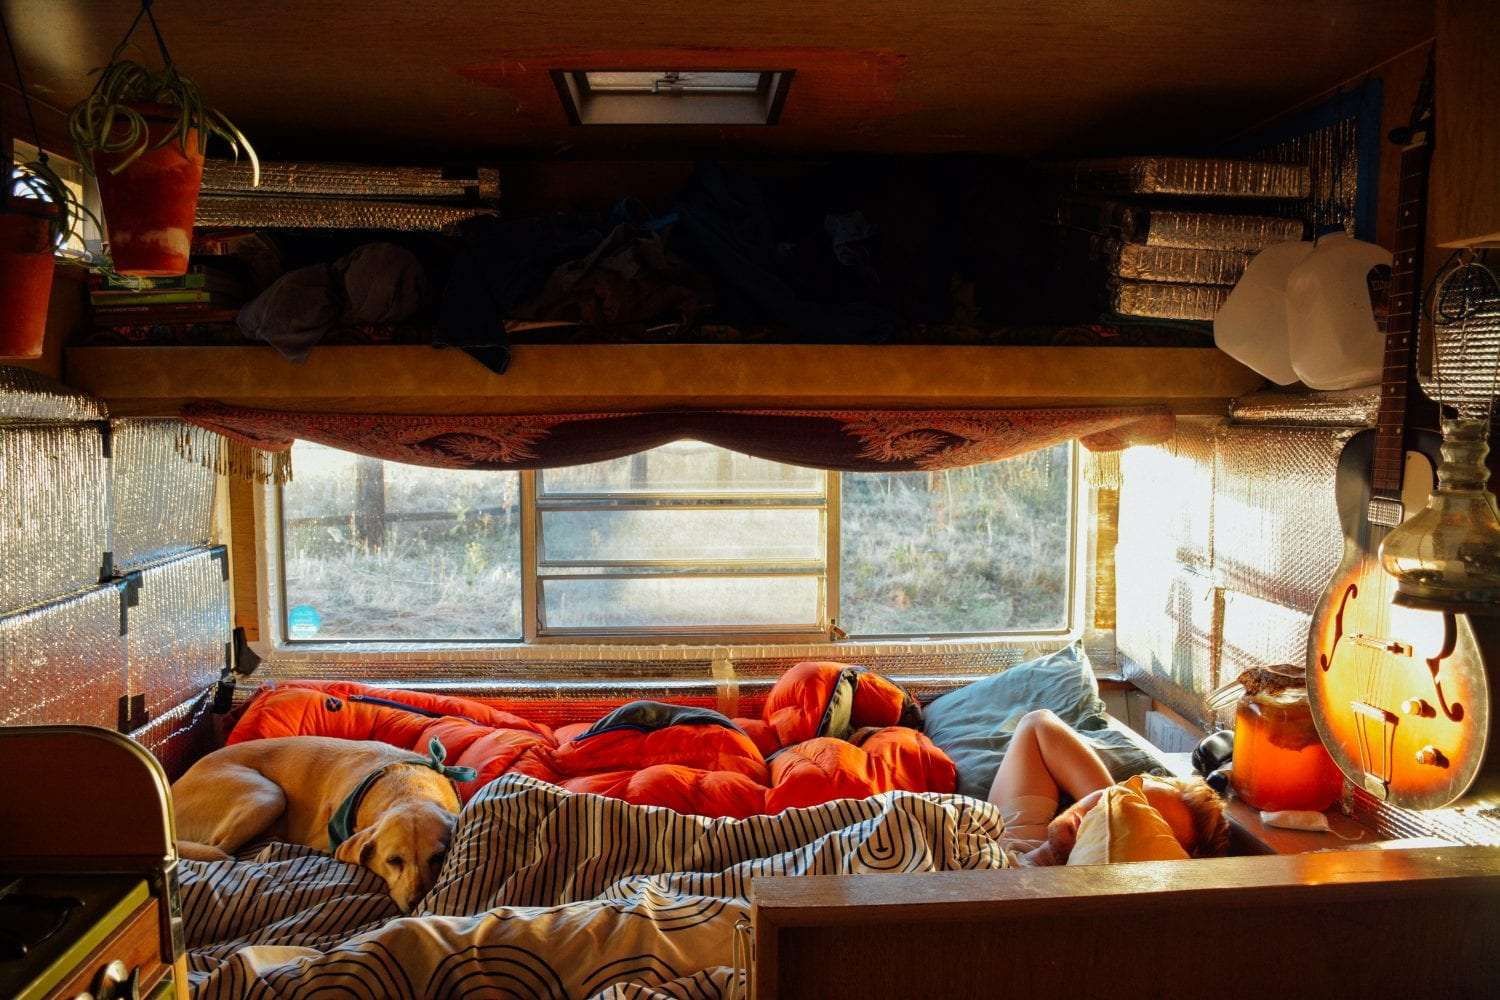 Cozy Blankets Inside Of A Small Travel Trailer Man And Dog Sleeping In The